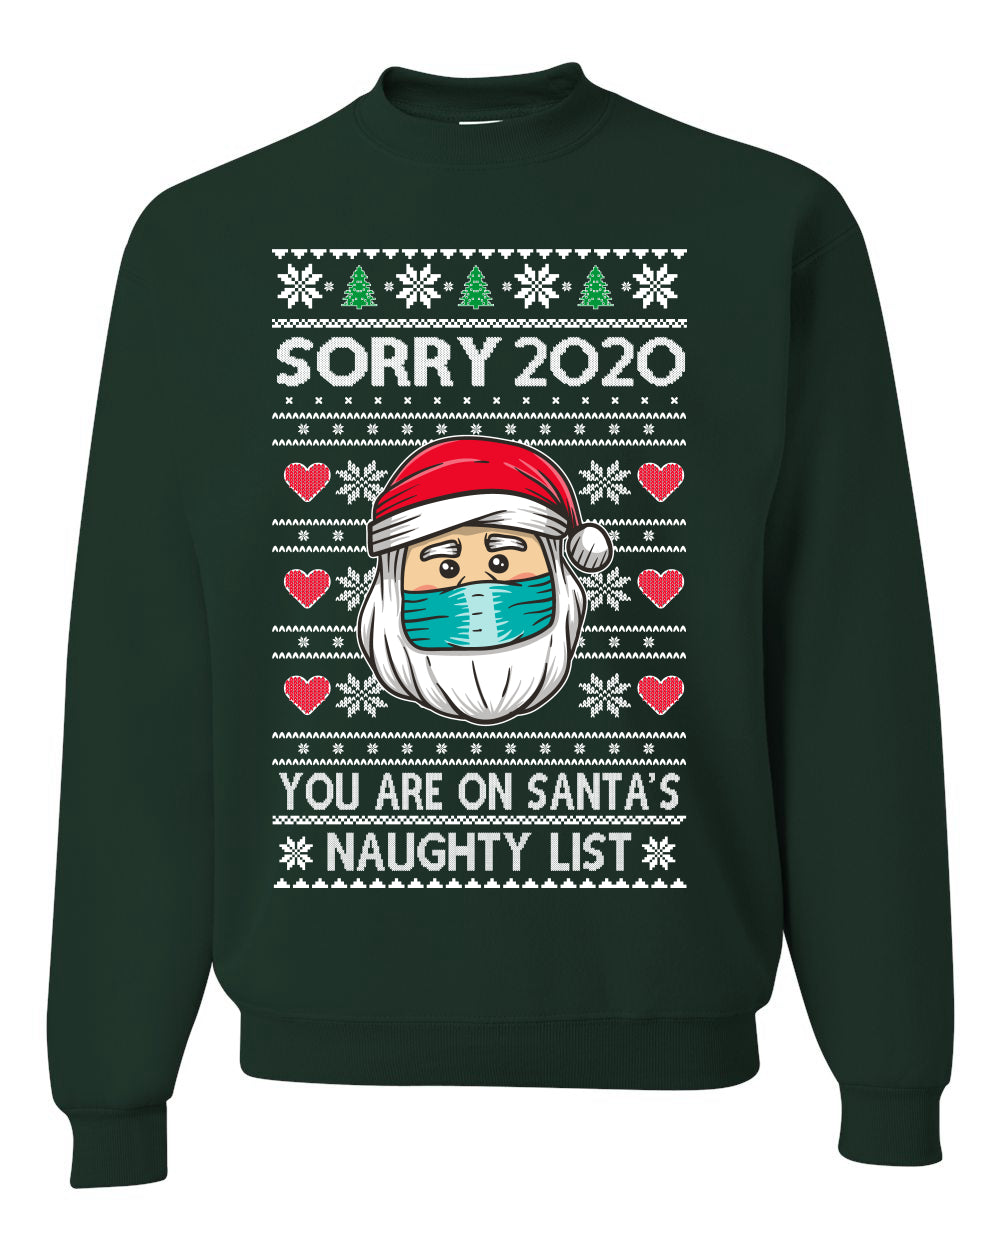 Sorry 2020 You are on Santa's Naughty List Ugly Christmas Sweater Unisex Crewneck Graphic Sweatshirt